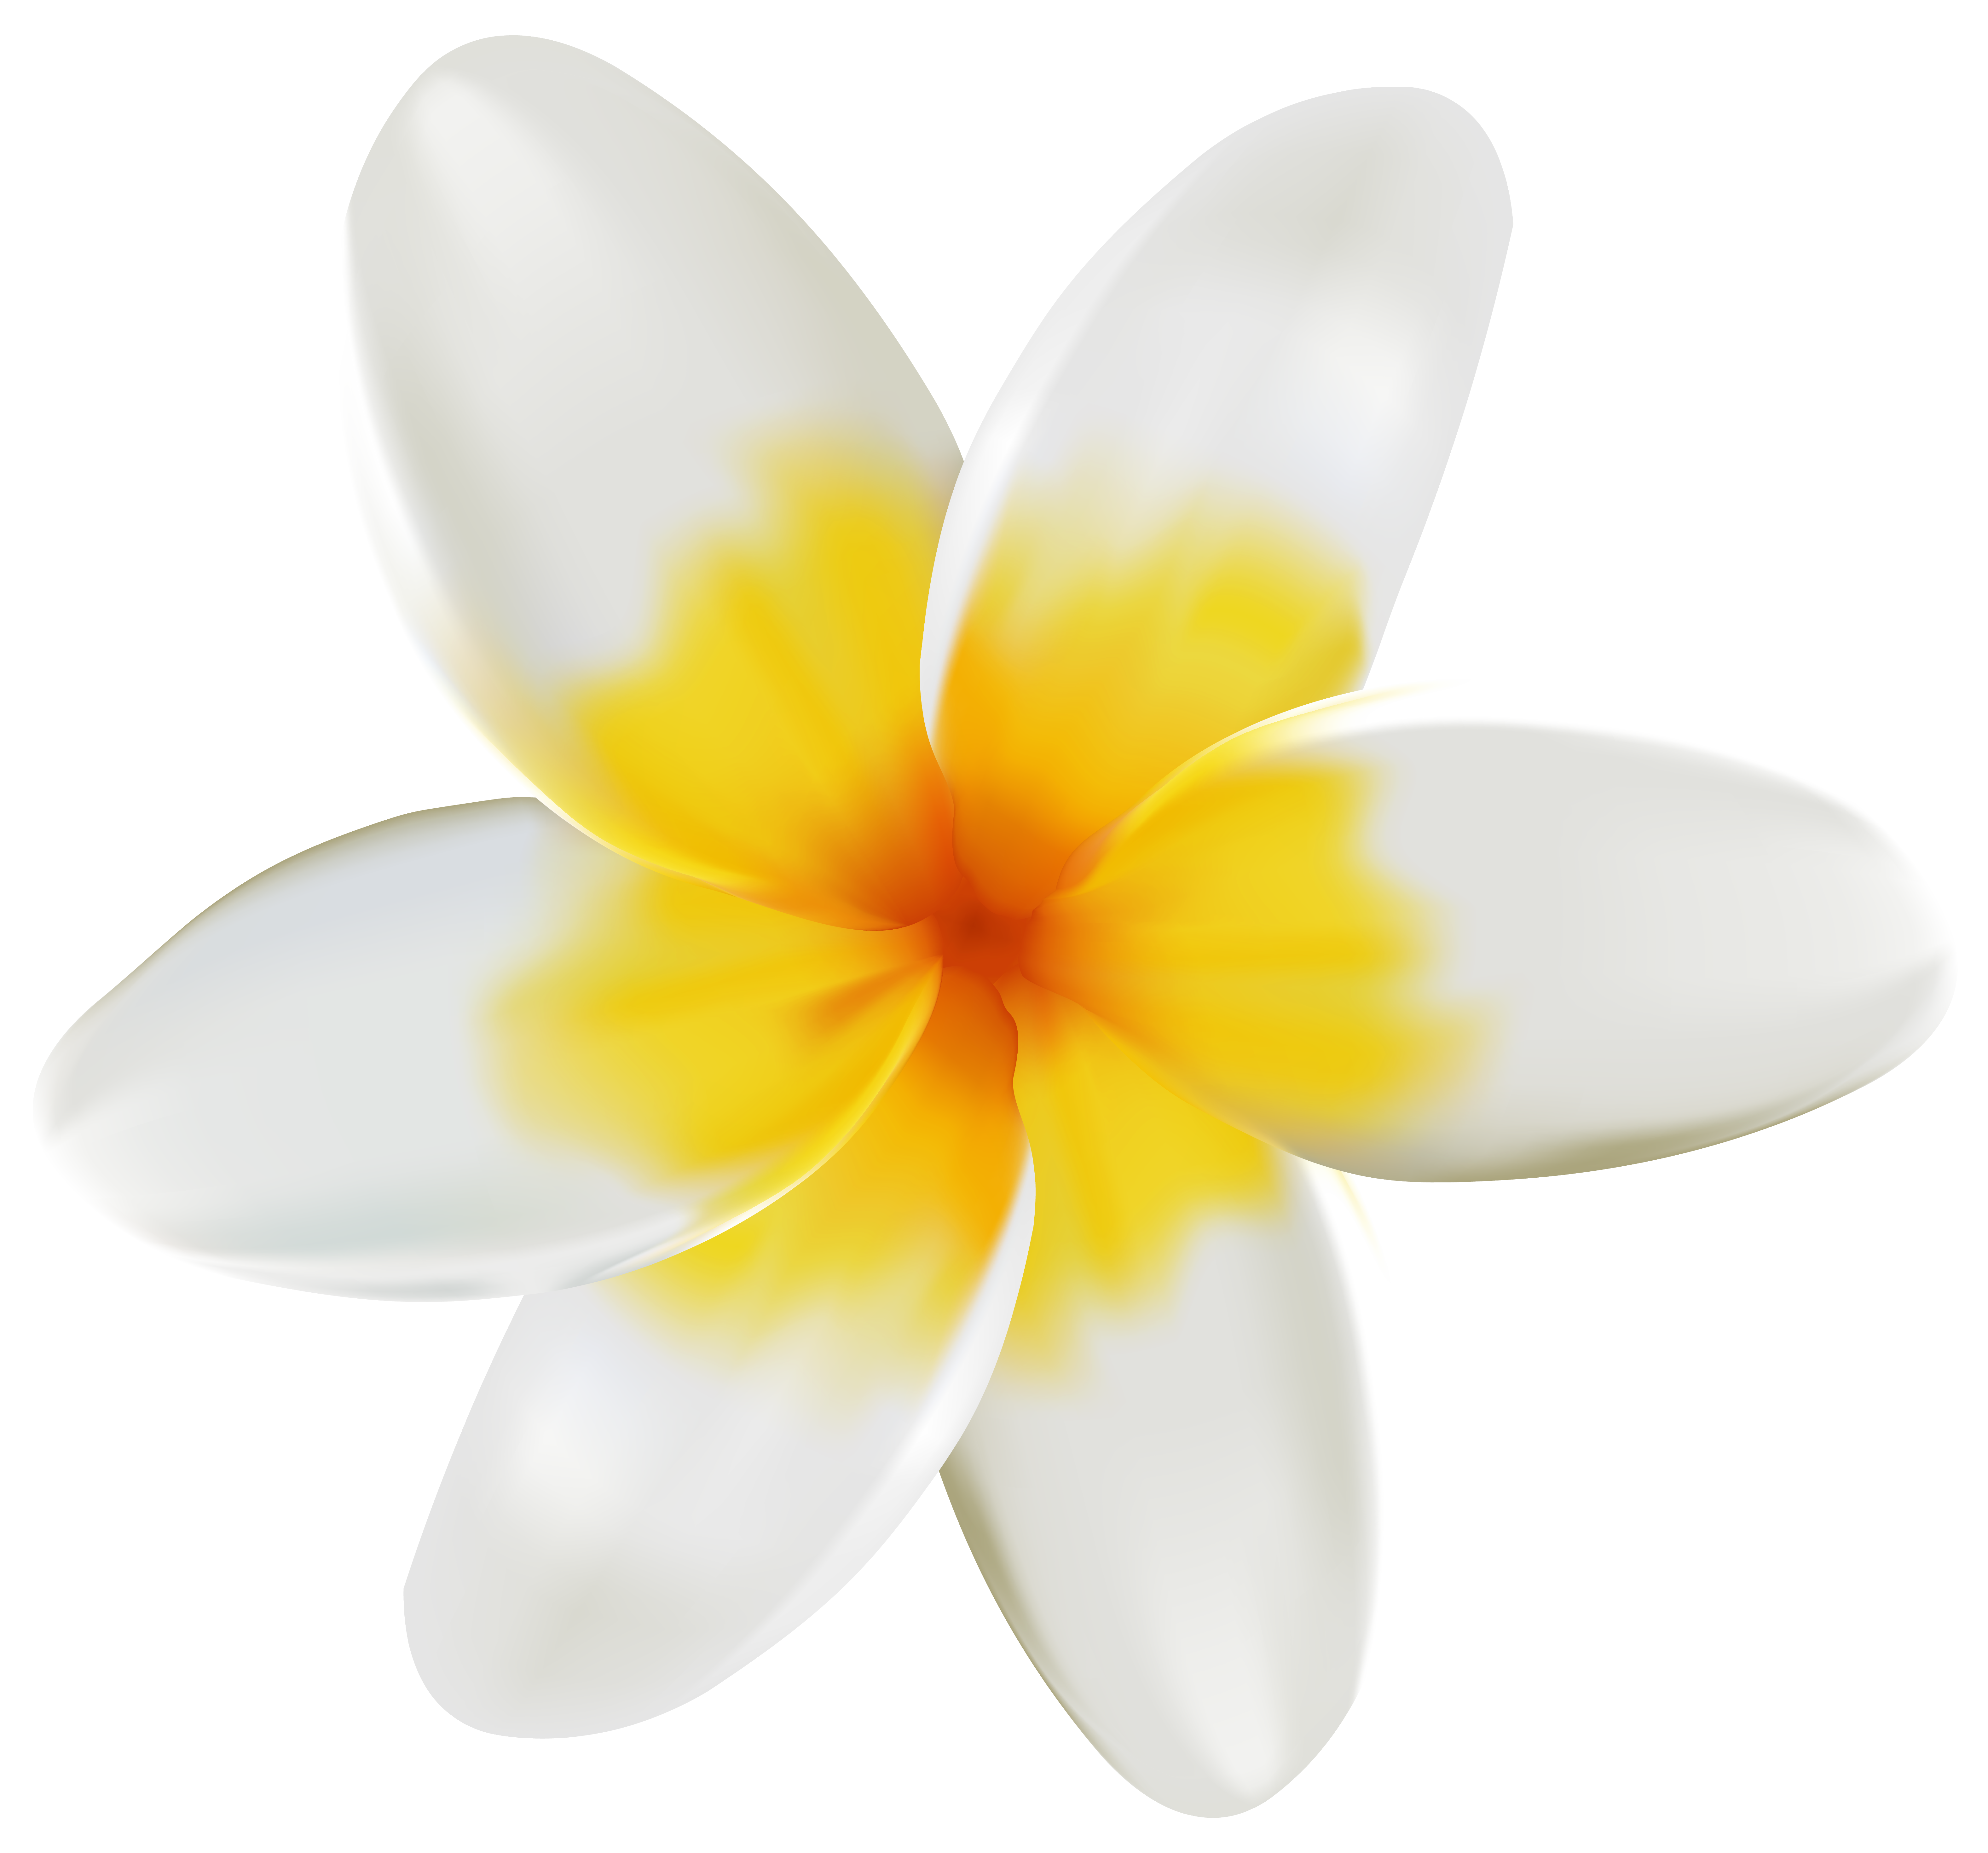 Clipart image gallery yopriceville. Plumeria flower png